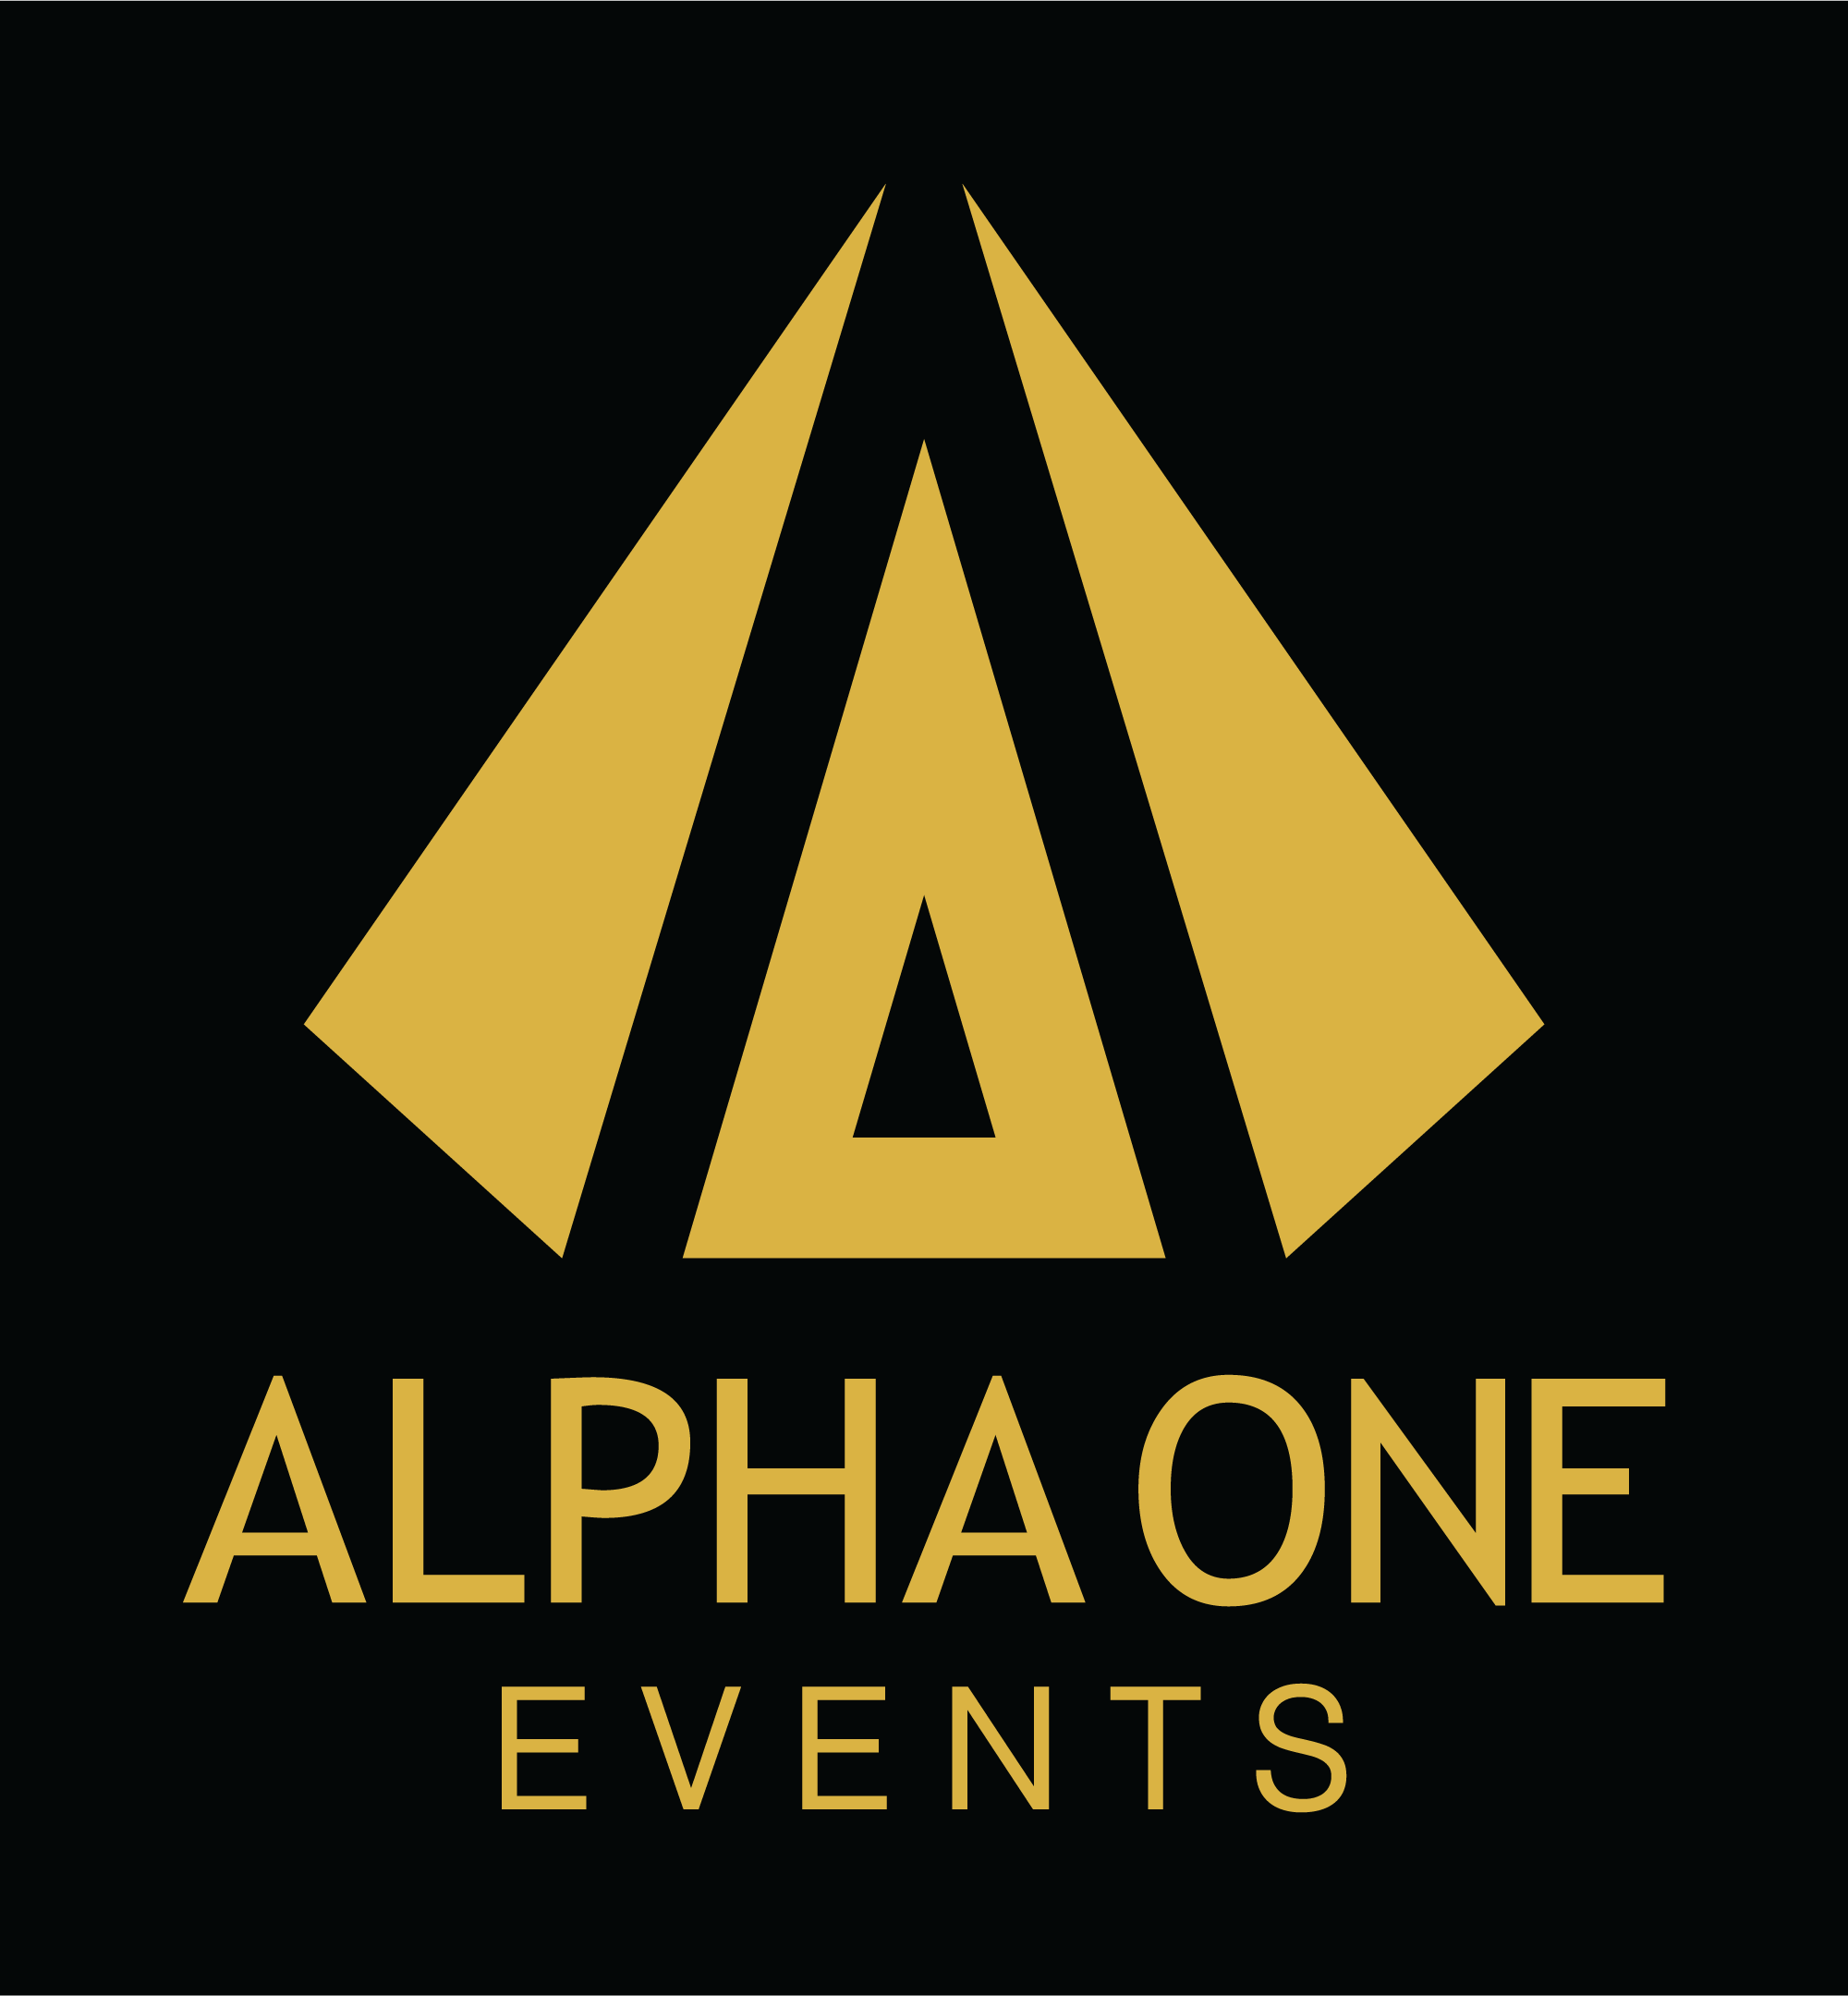 Alpha One Events Name NCR Corporation as Headline Sponsor of the Middle East NXT Banking Summit